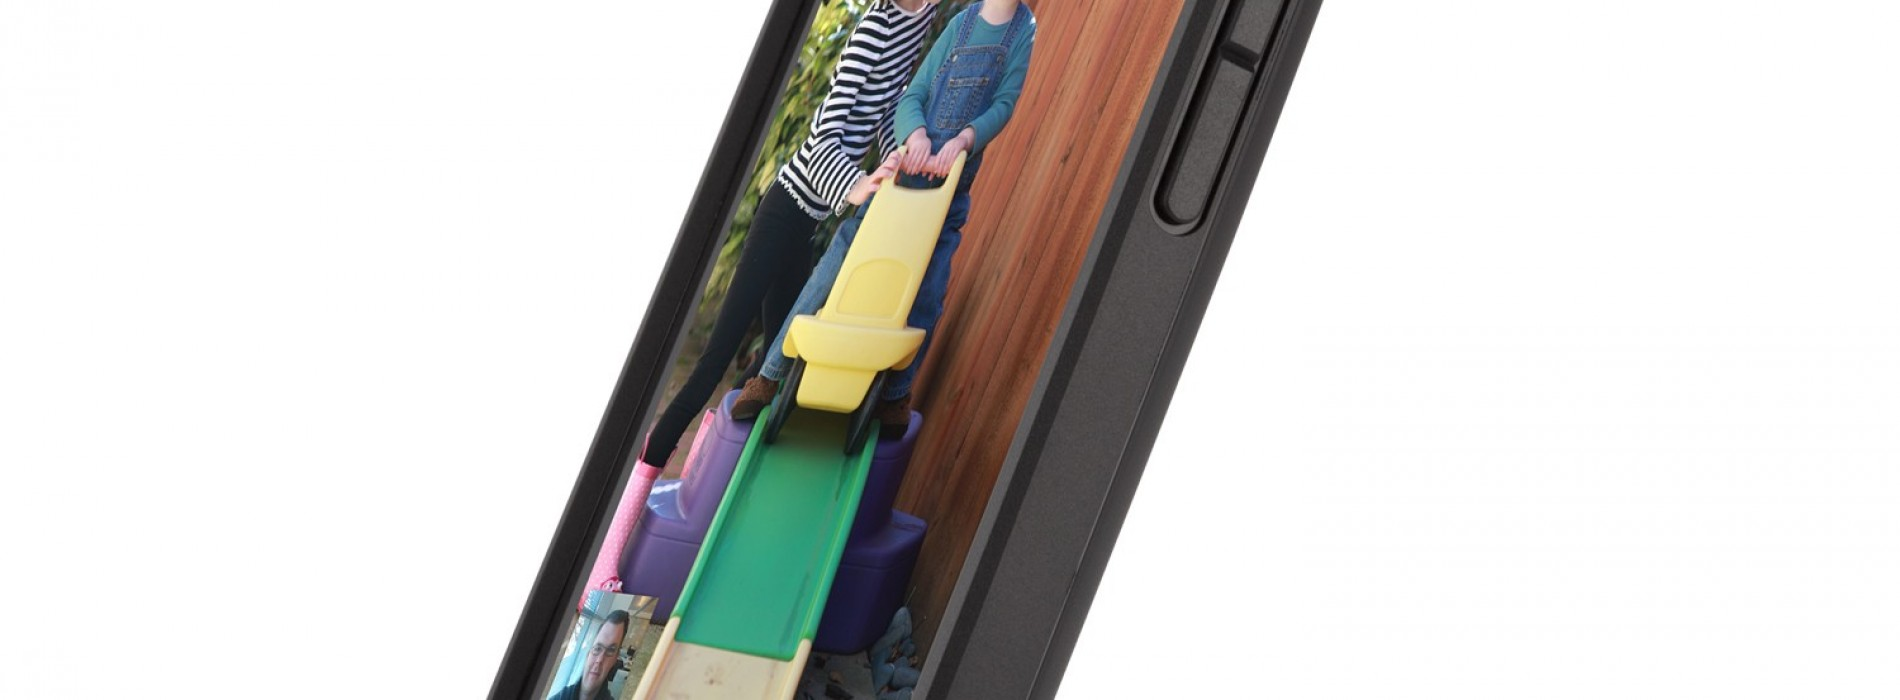 HTC One Case Review Madness Week: Speck SmartFlex View